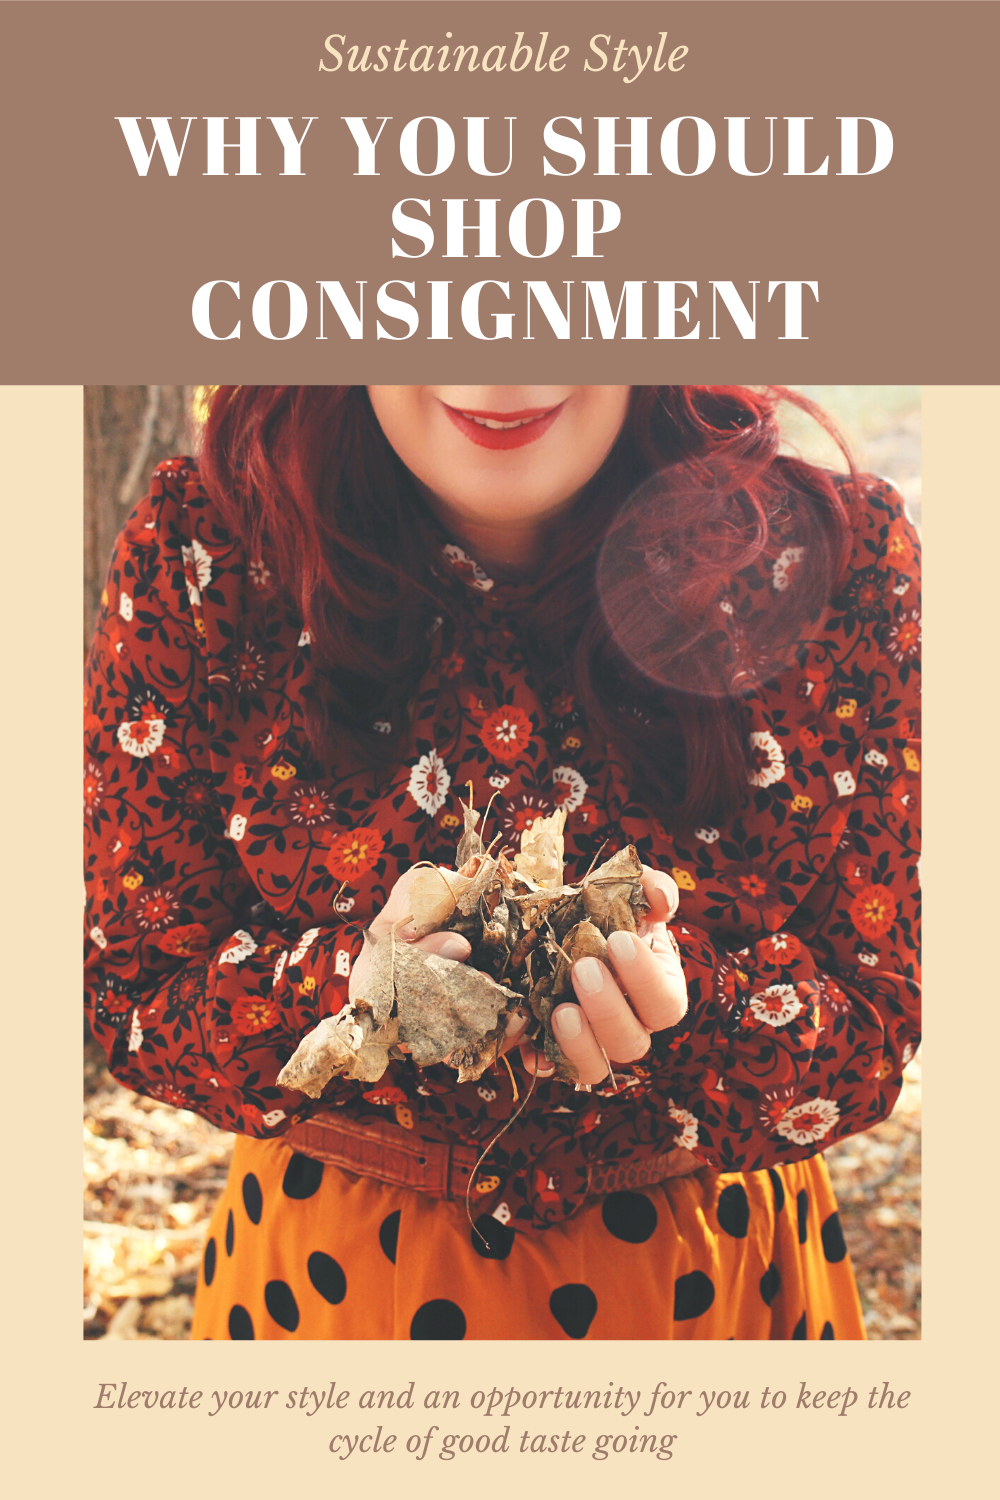 Why You Should Shop Consignment